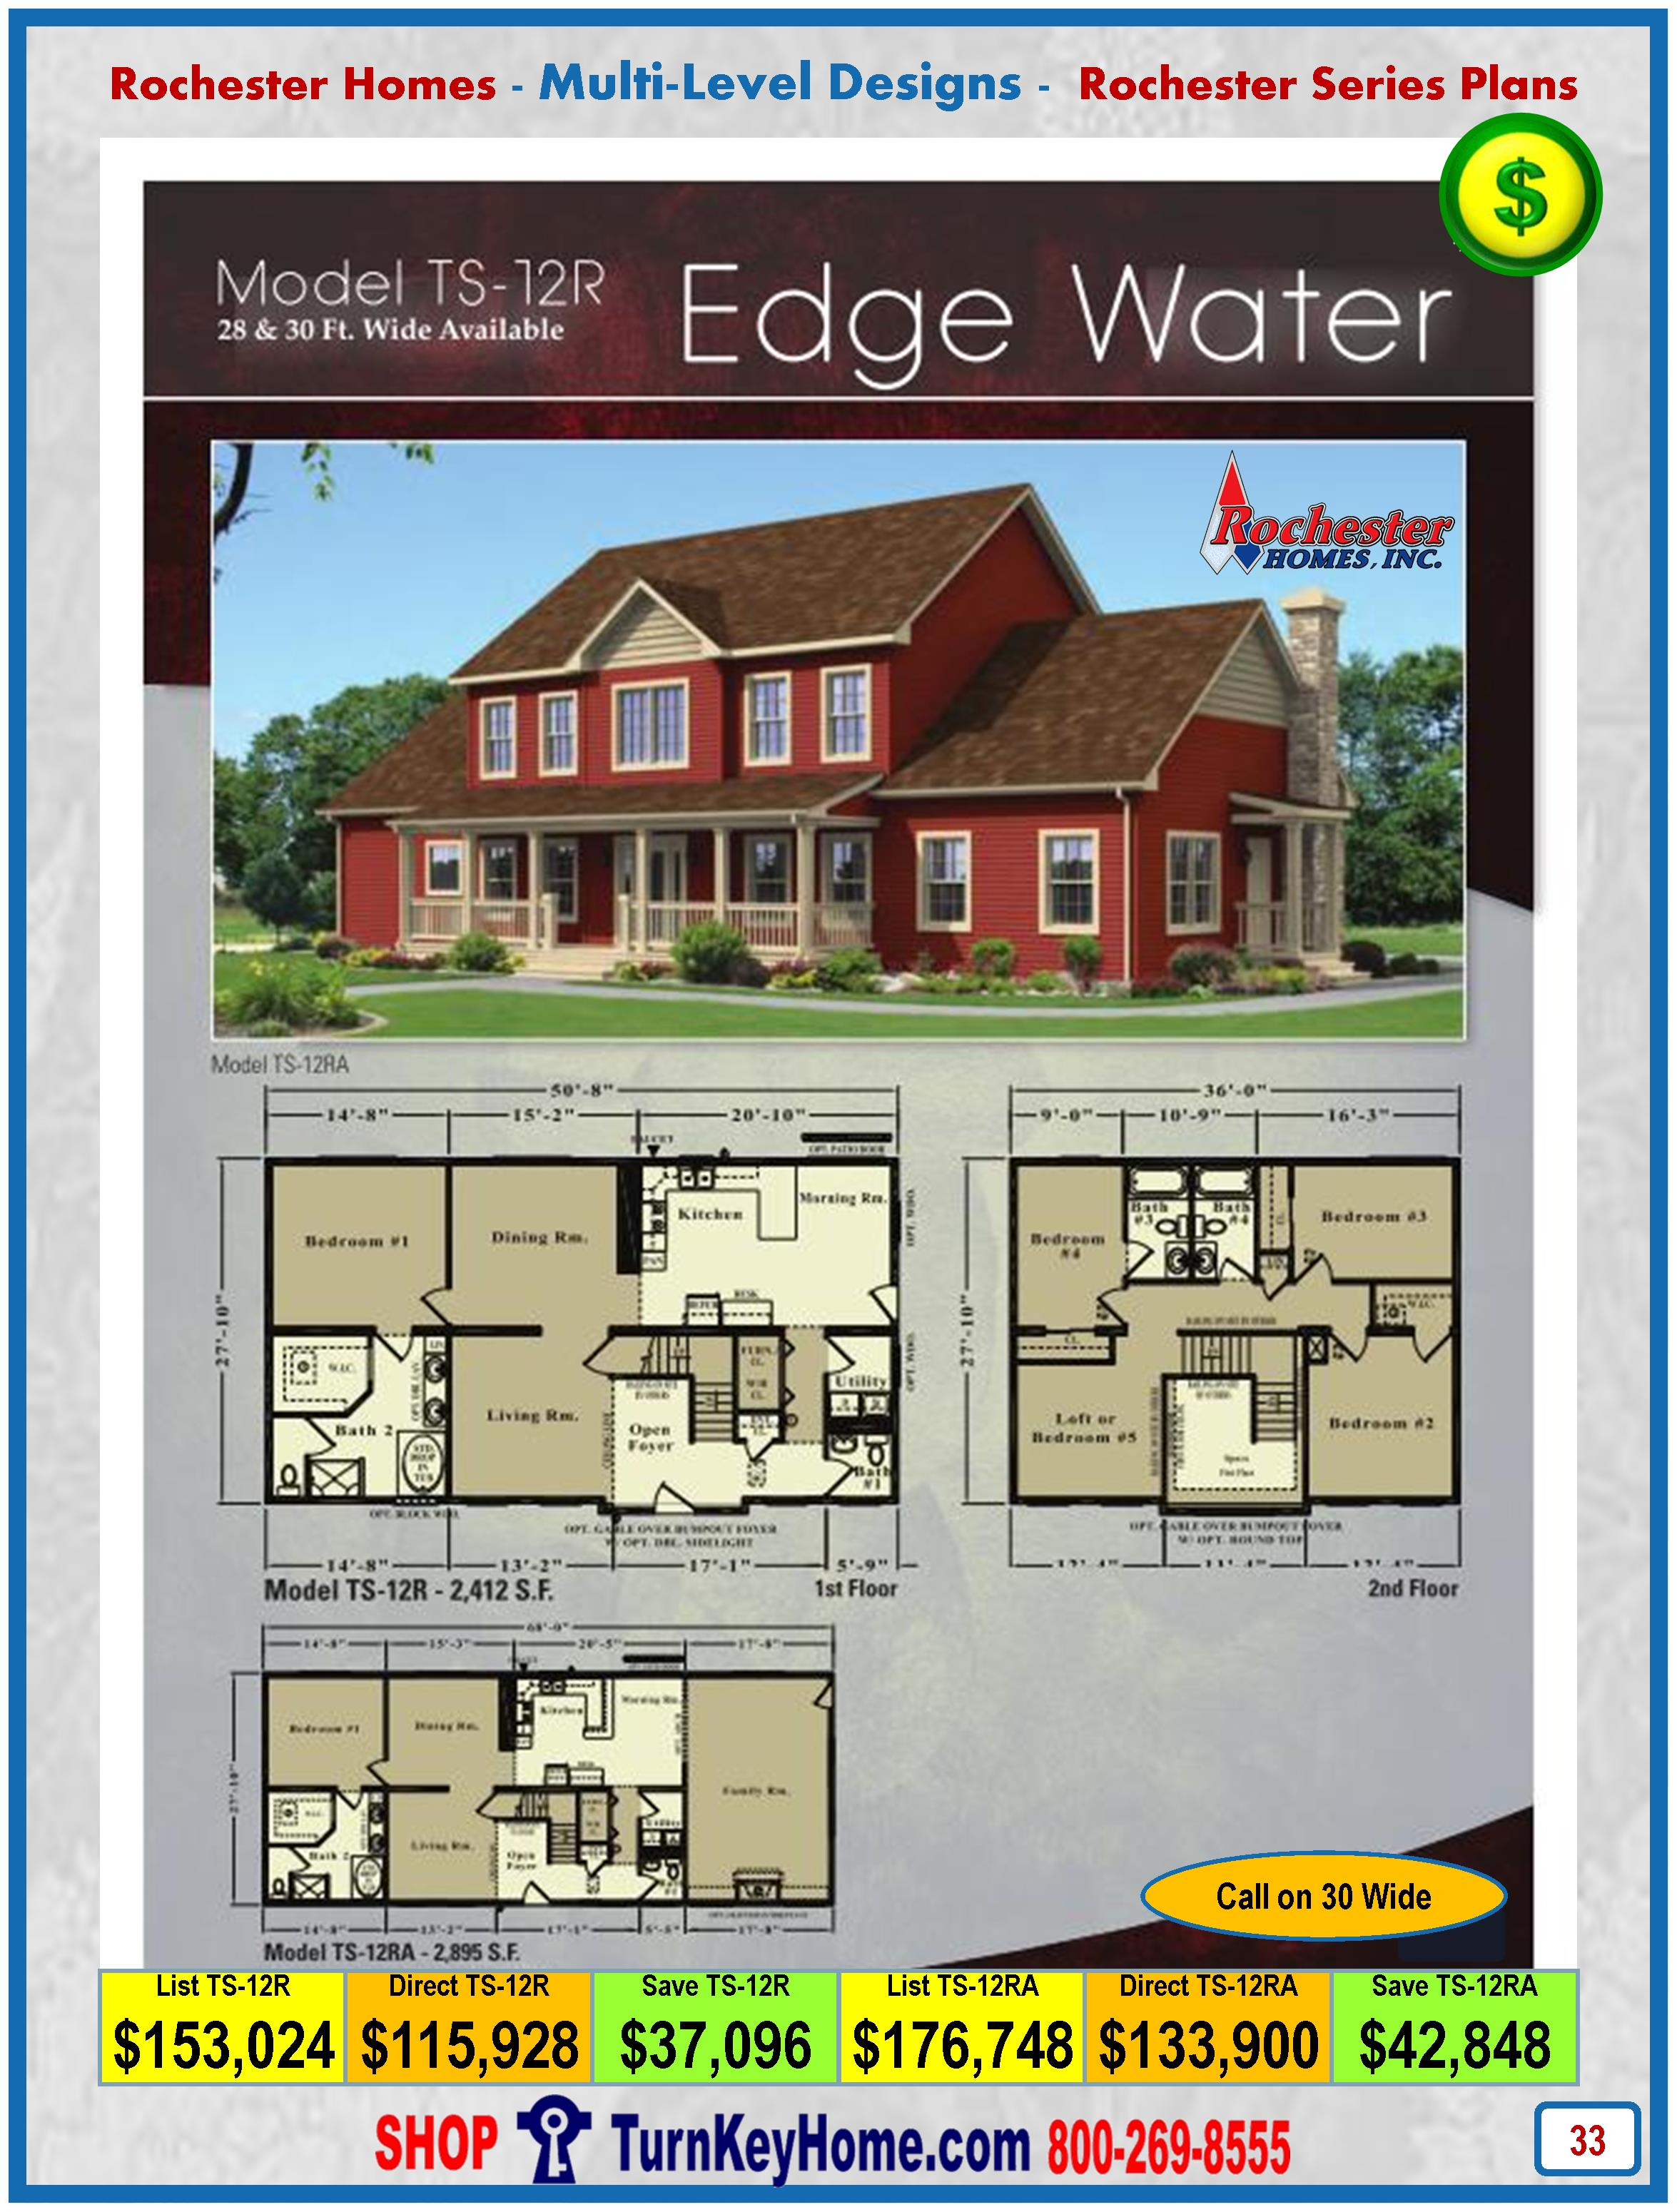 edge water rochester modular home two story plan price modular home rochester homes two story edgewater ts12r